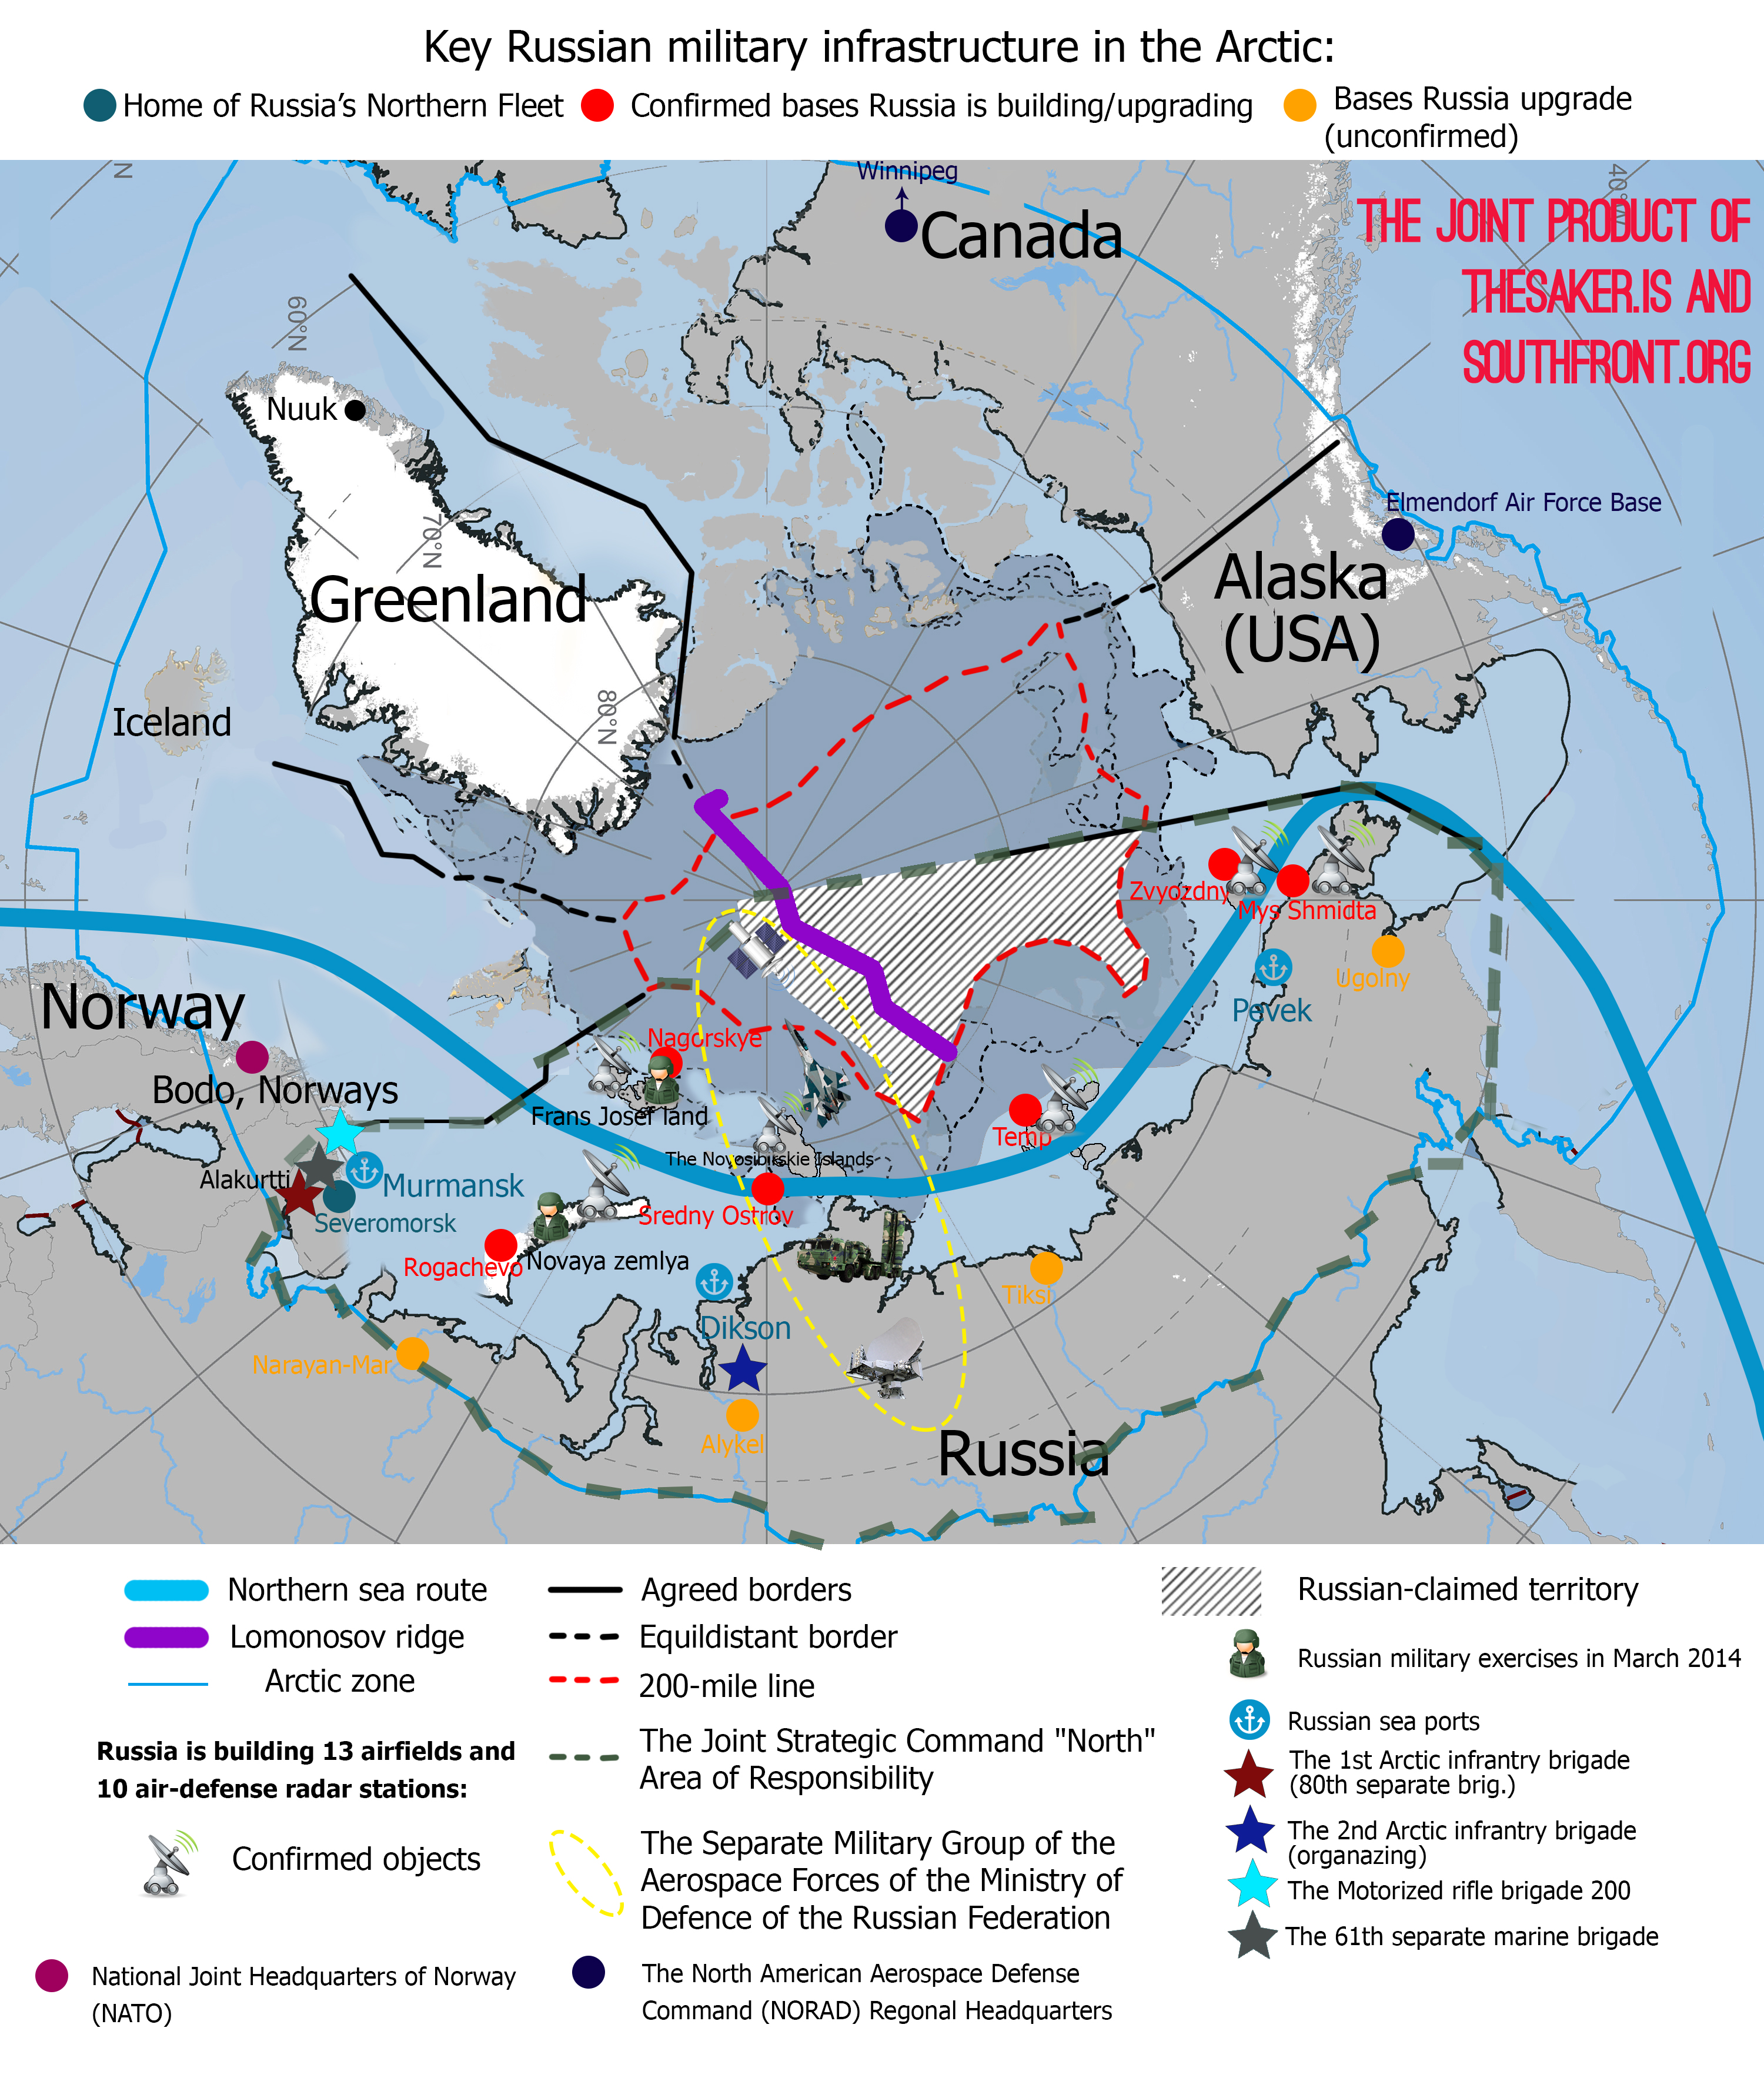 Russia Building Its 4th Anti-Stealth Radar System in Arctic